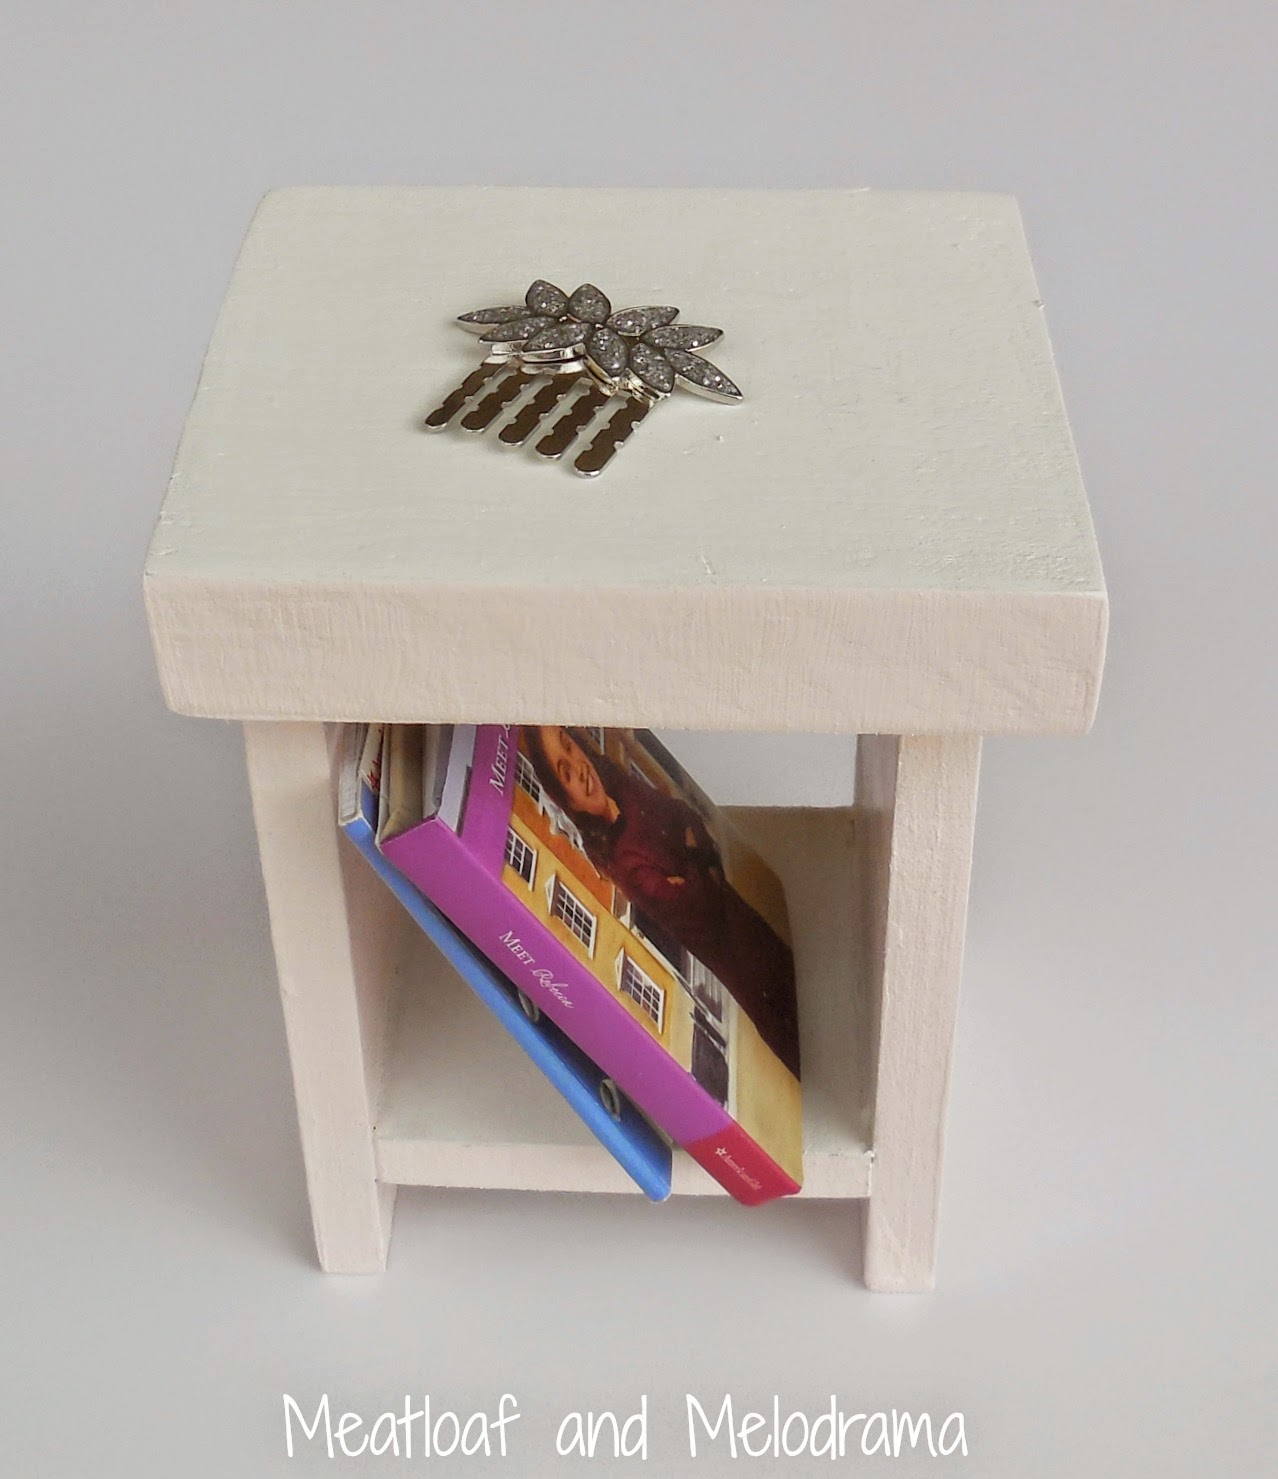 pink and white doll nightstand made from wood with books